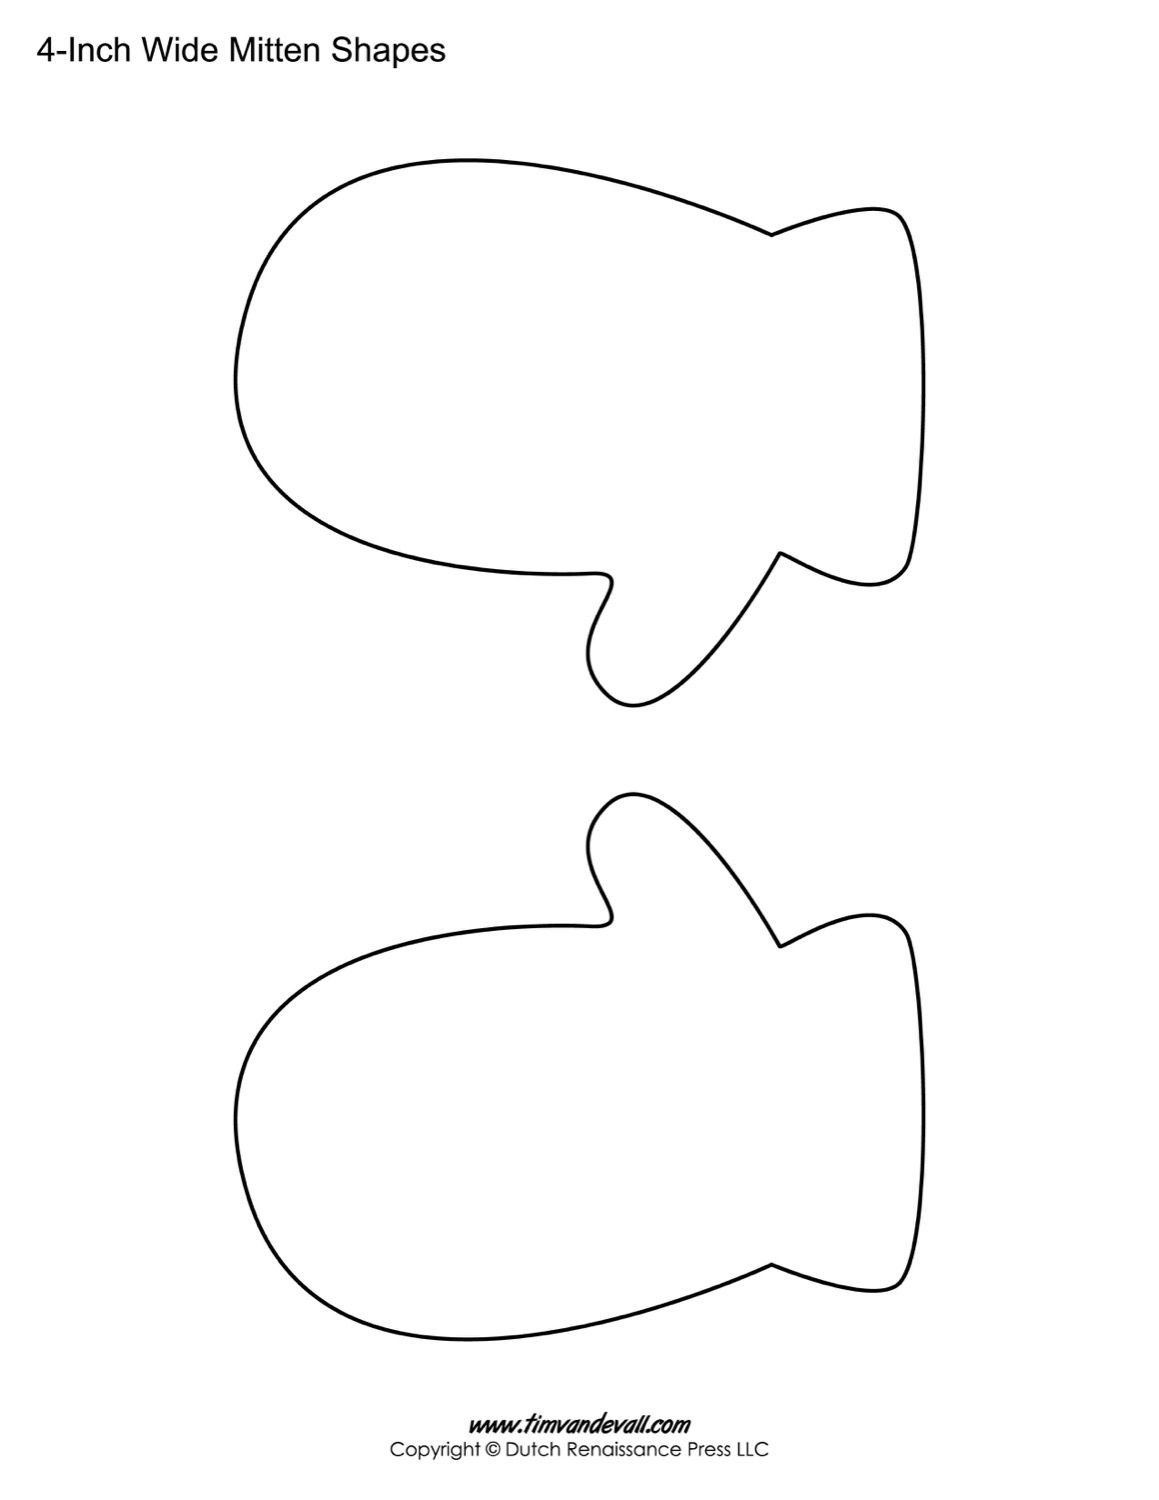 photo relating to Printable Mitten Pattern referred to as Printable Mitten Templates Blank Mitten Form PDFs